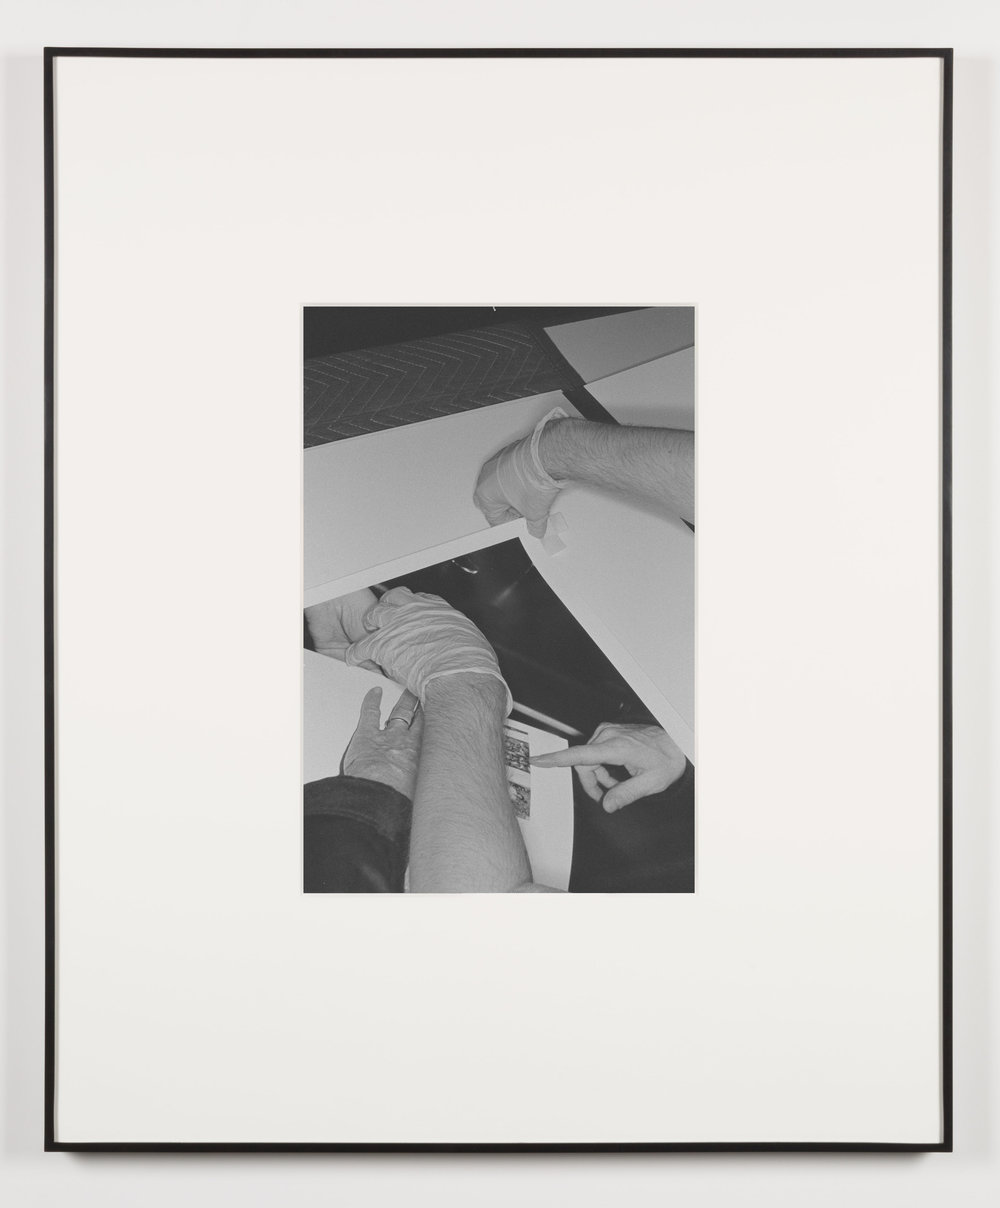 Die Qual der Lust (Los Angeles, California, August 15, 2013), Frame No. 14   2014  Black and white digital fiber print  20 x 13 1/2 inches   Art Handling, 2011–    Selected Bodies of Work, 2014